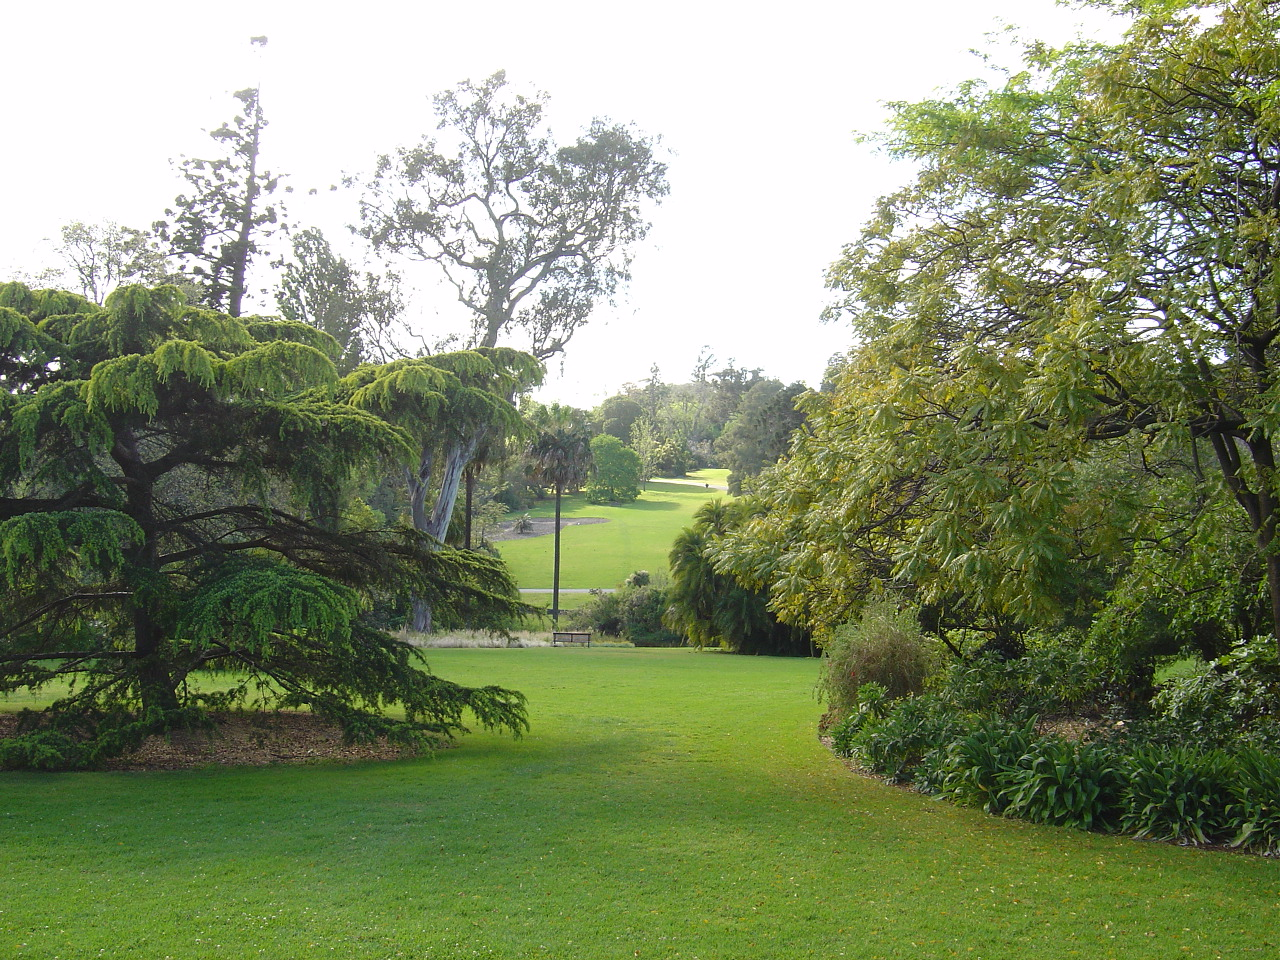 World visits best visit place botanical garden for Gardening australia